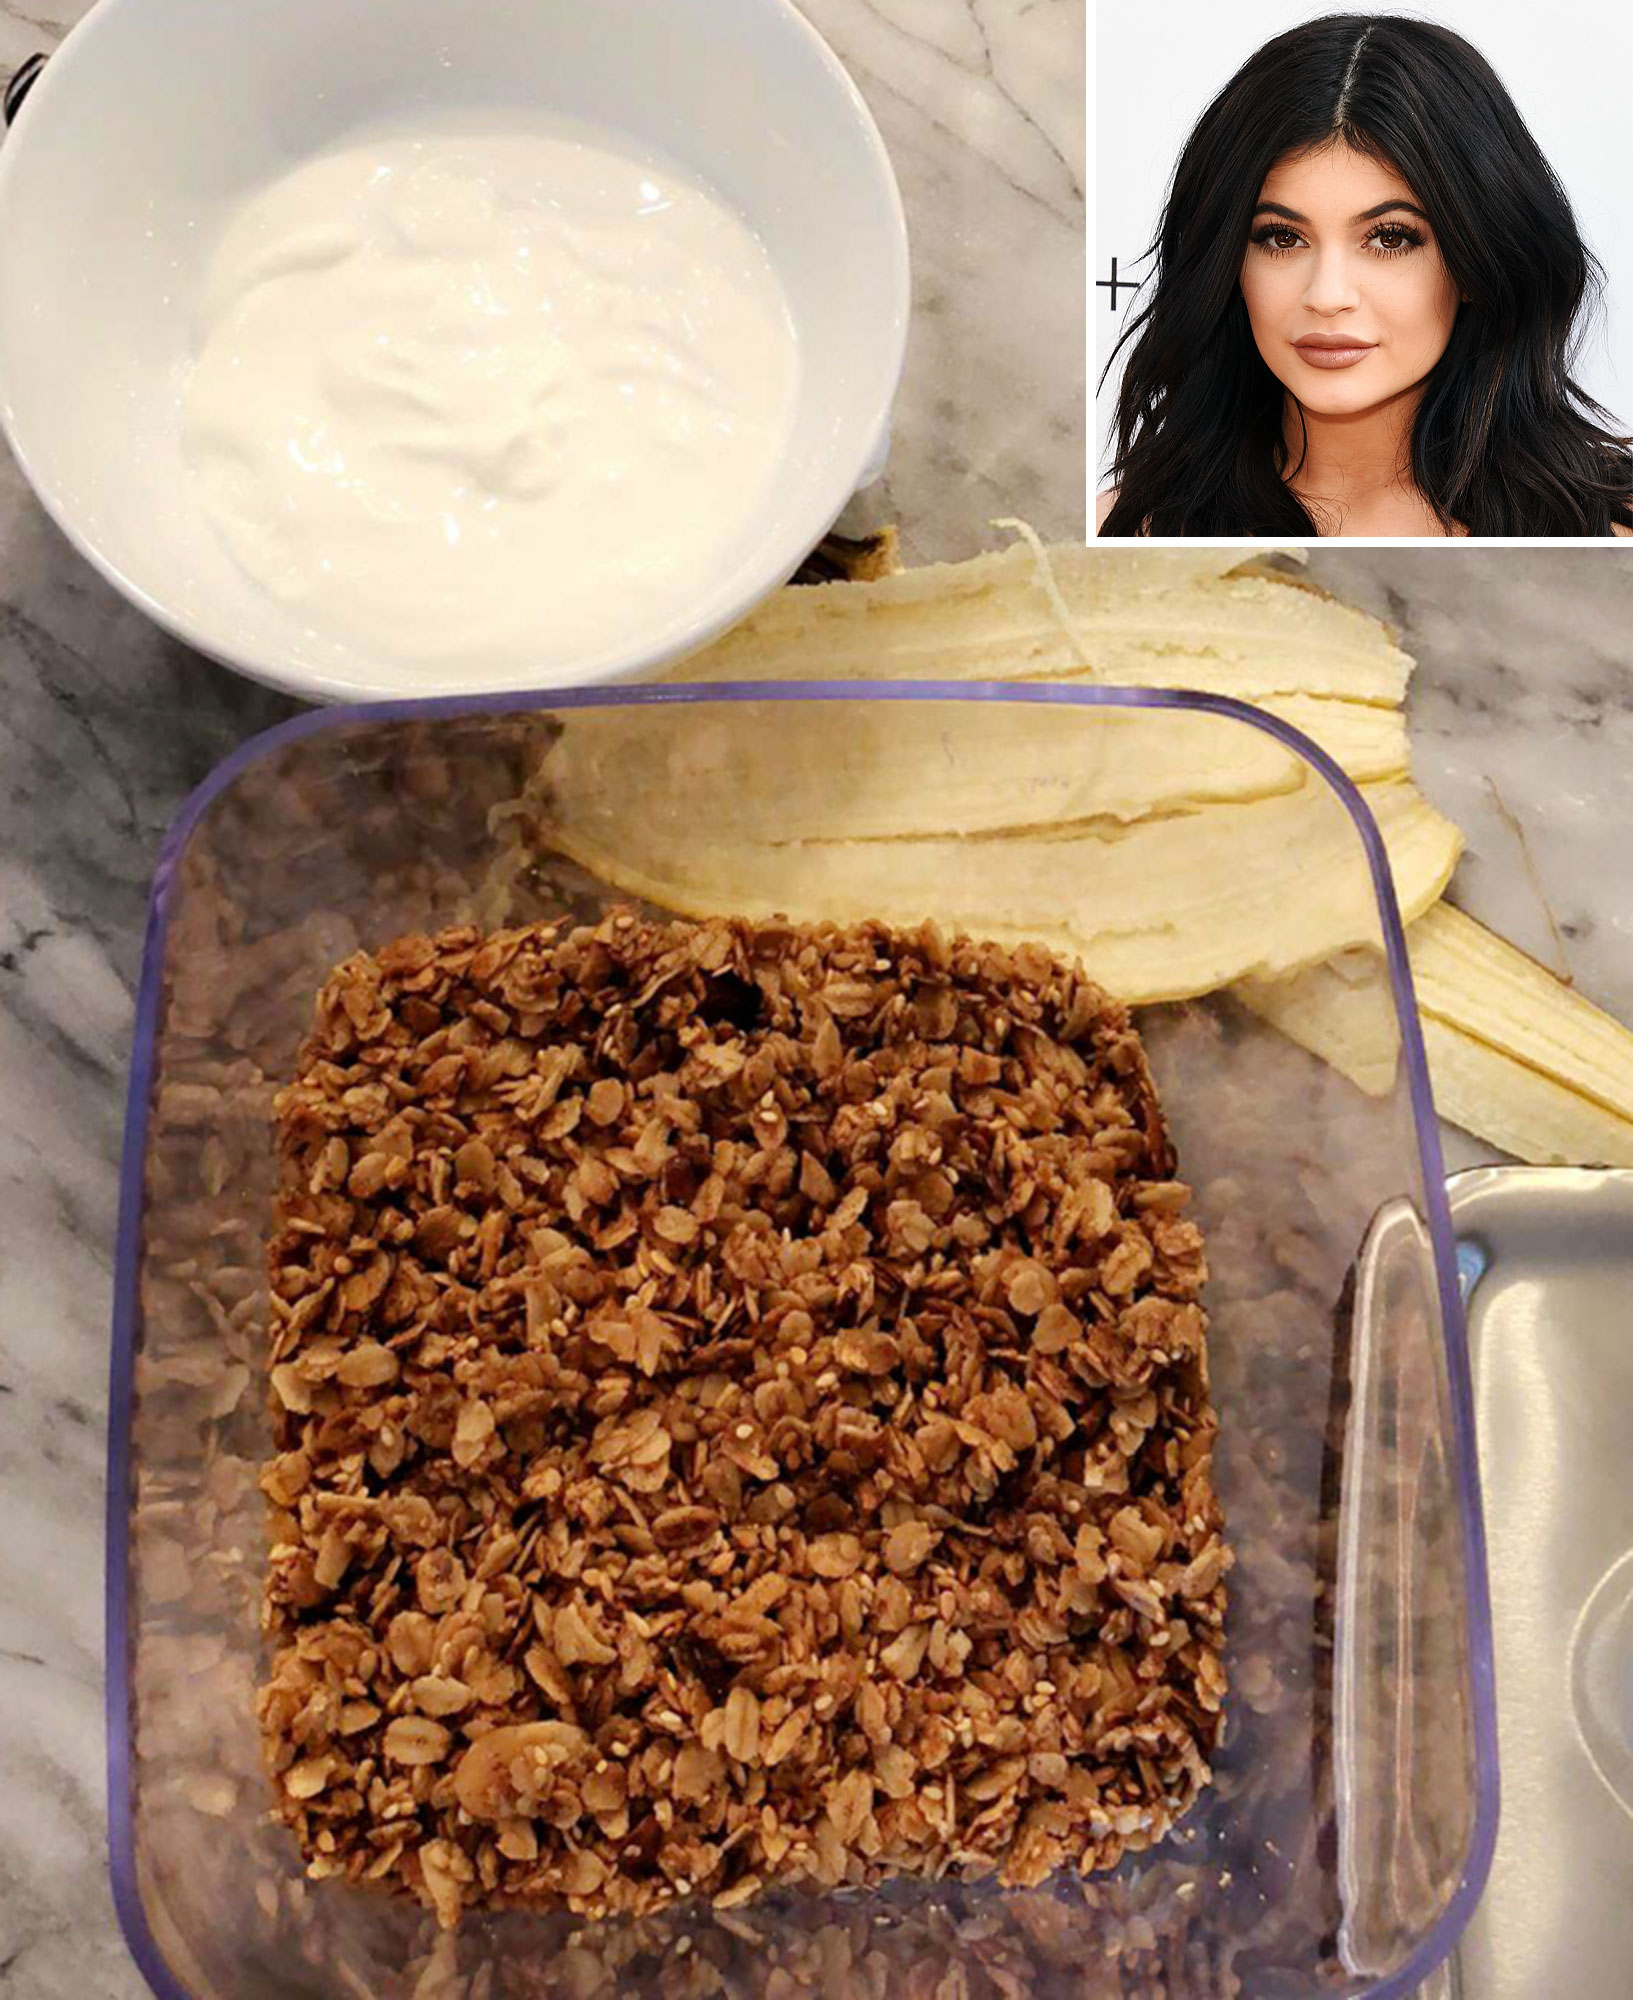 KYLIE'S GRANOLA BOWL